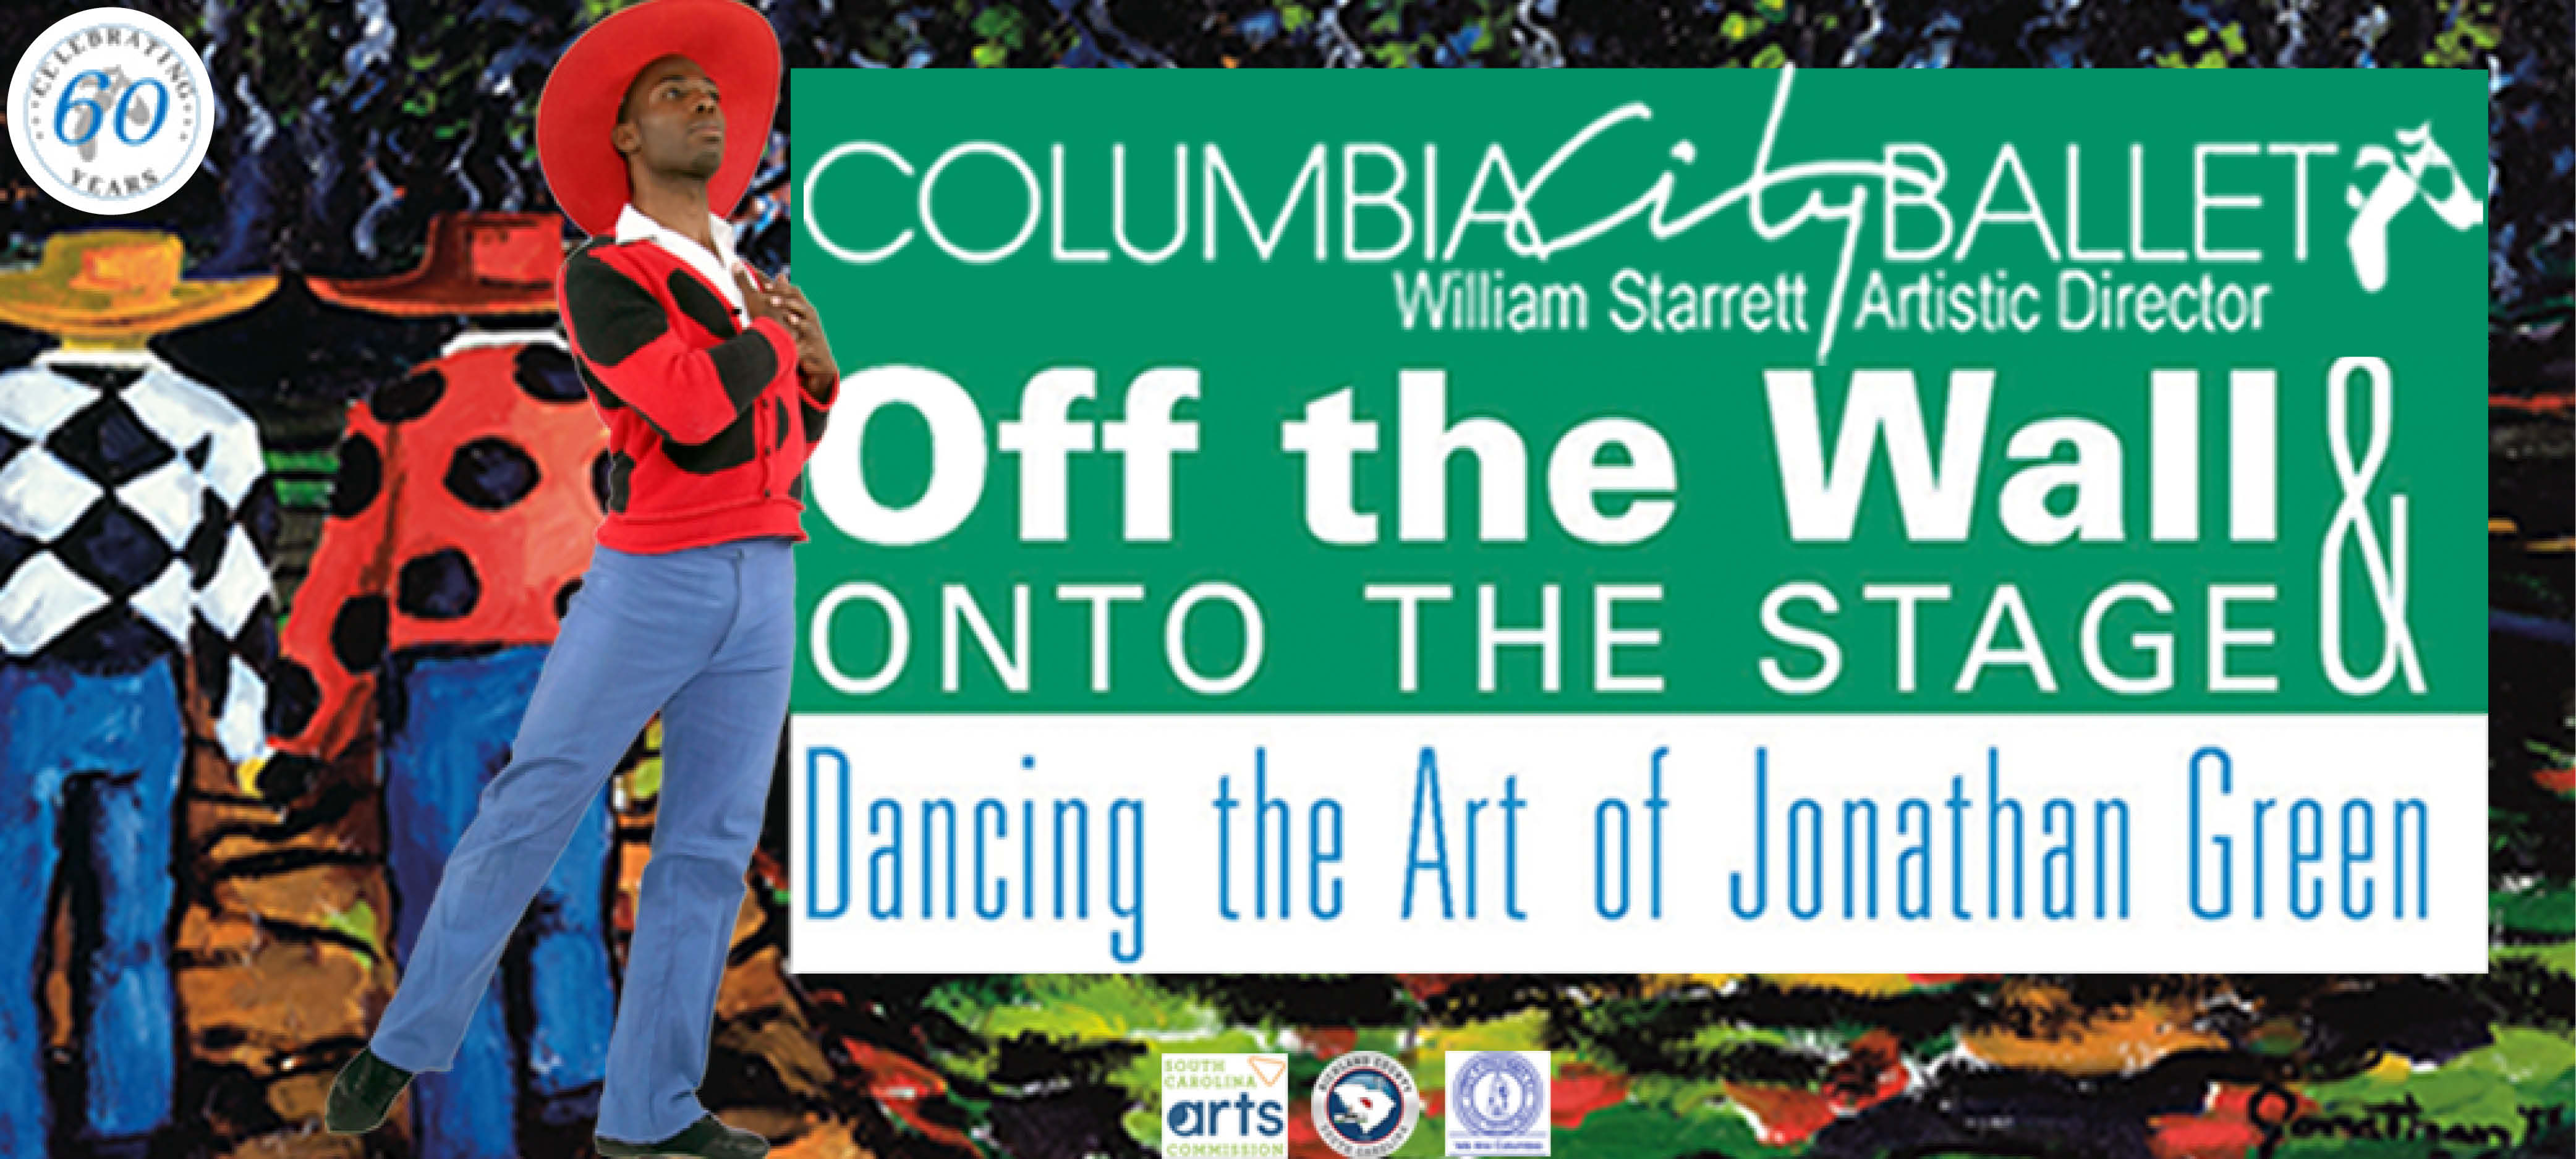 Columbia City Ballet presents Off the Wall and Onto the Stage